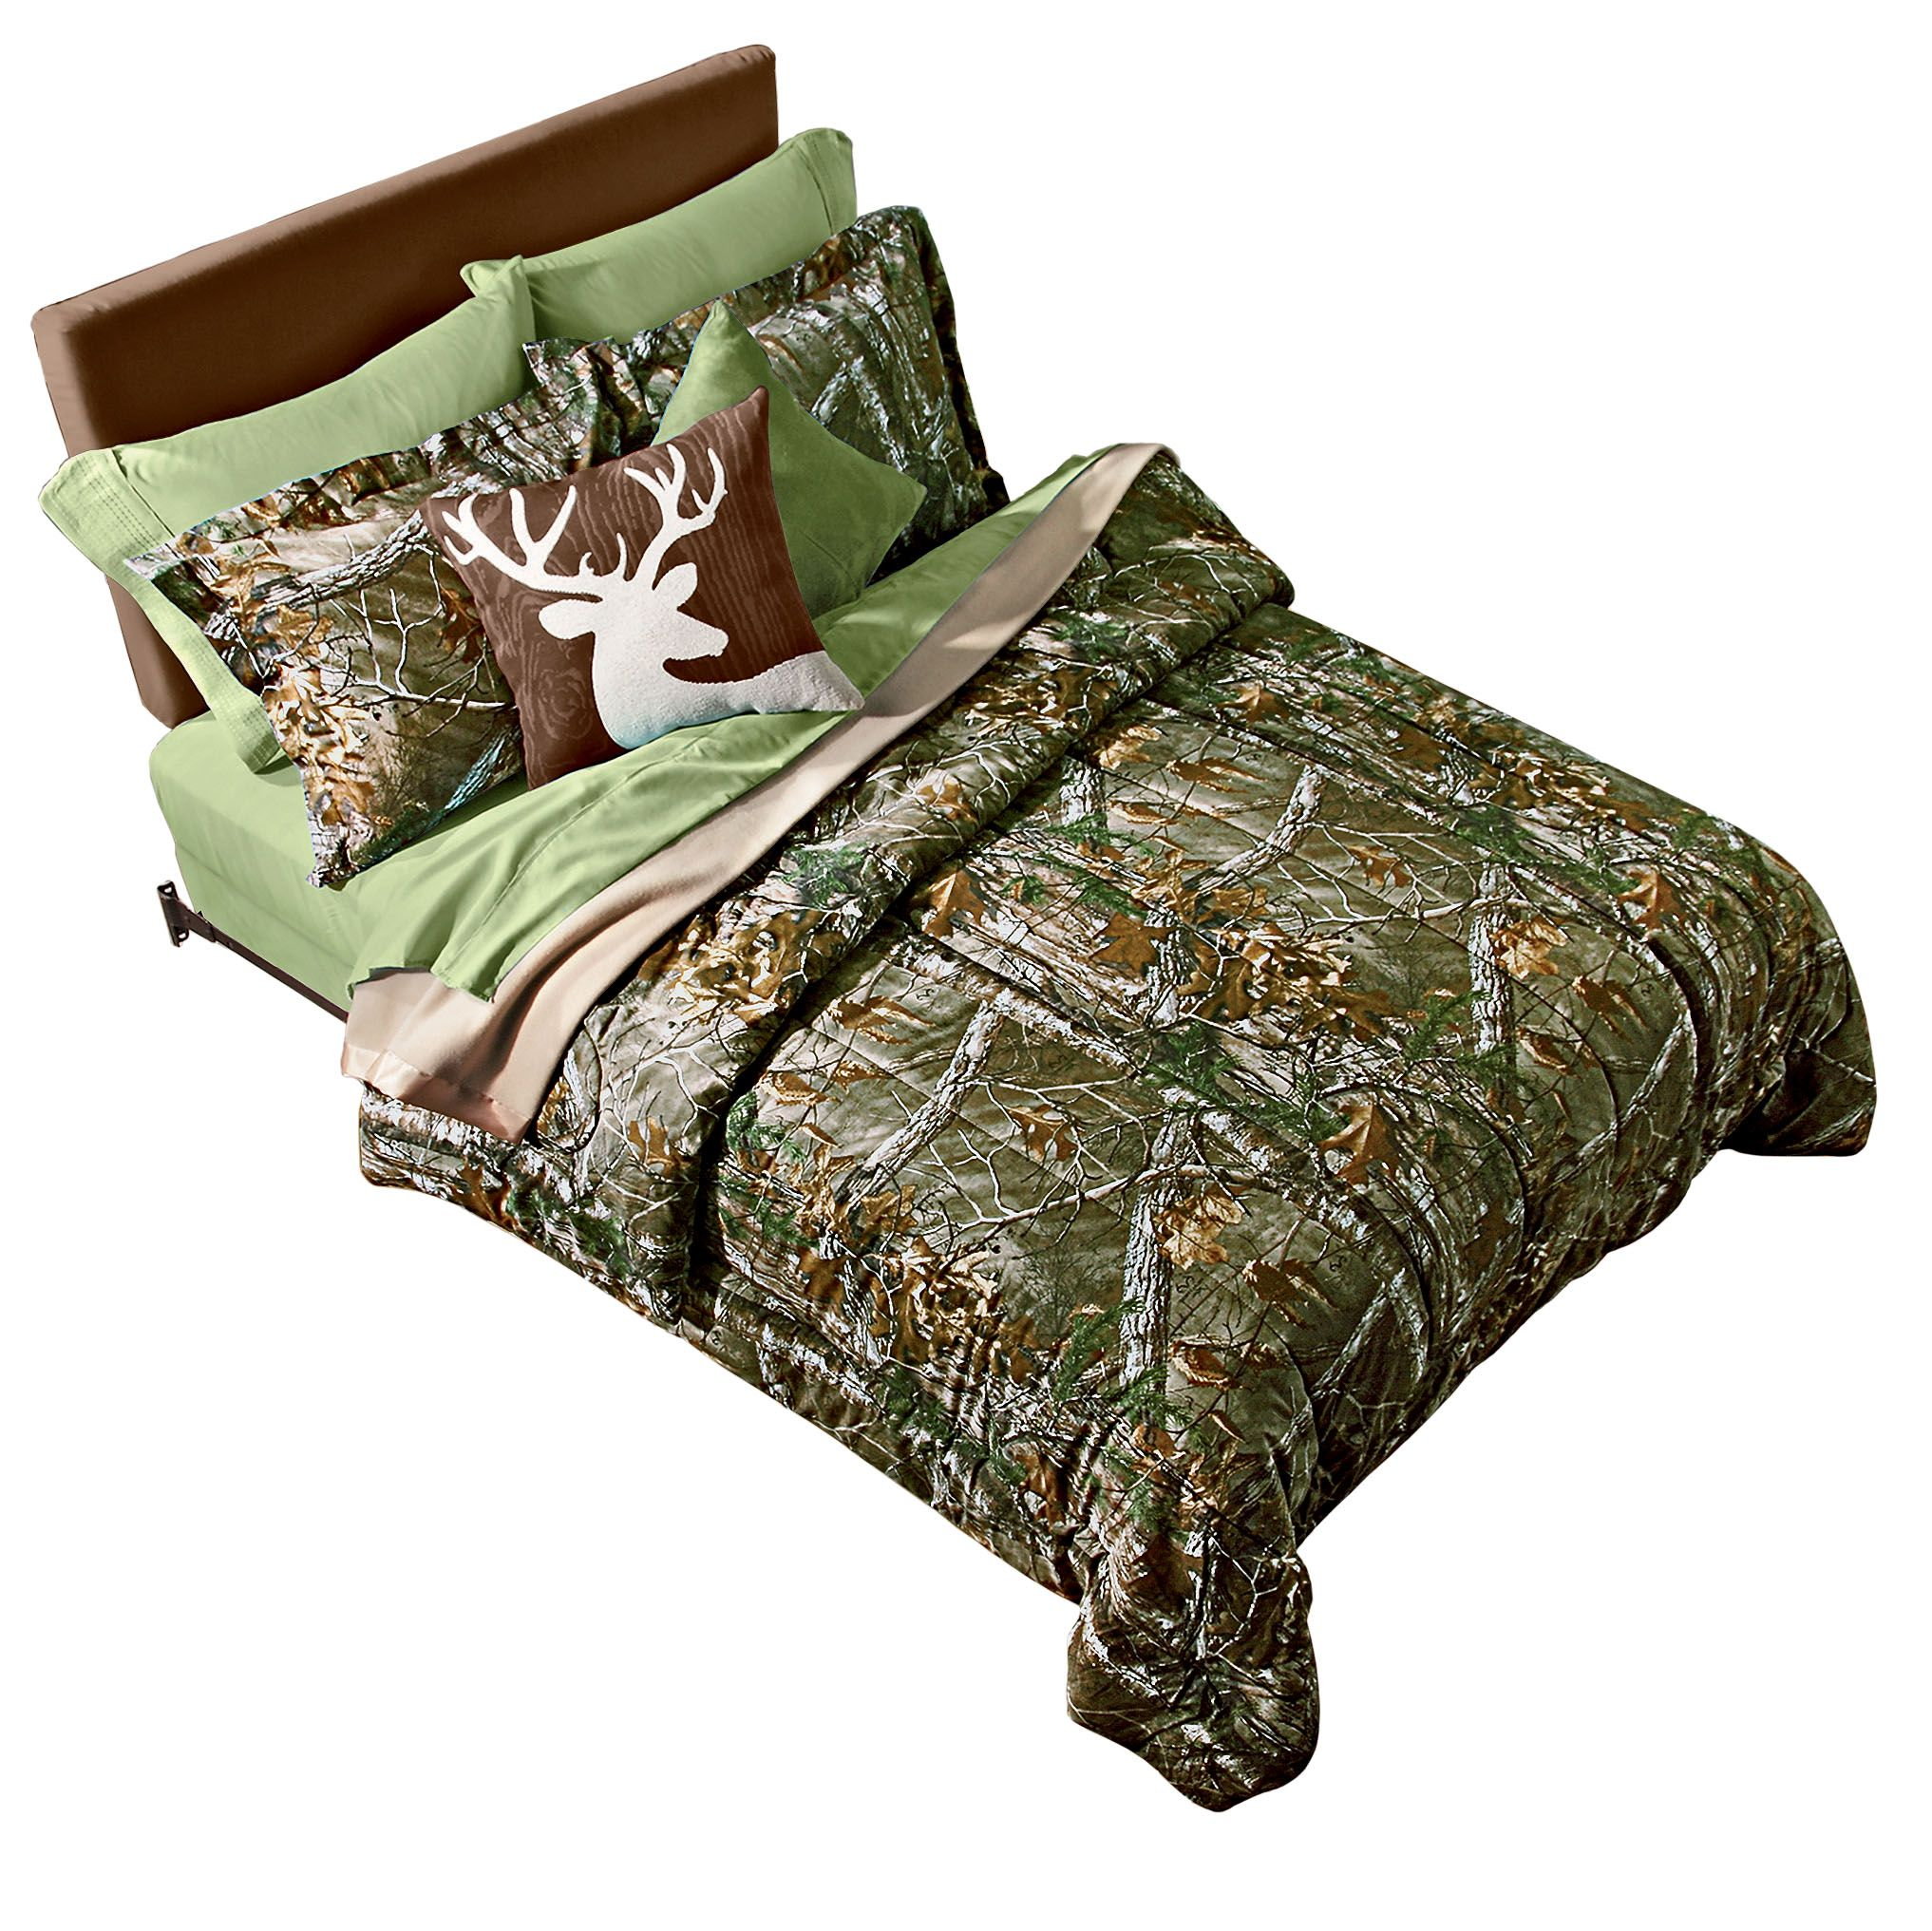 Sawing Logs In Realtree Bedding #shopko Country Decor